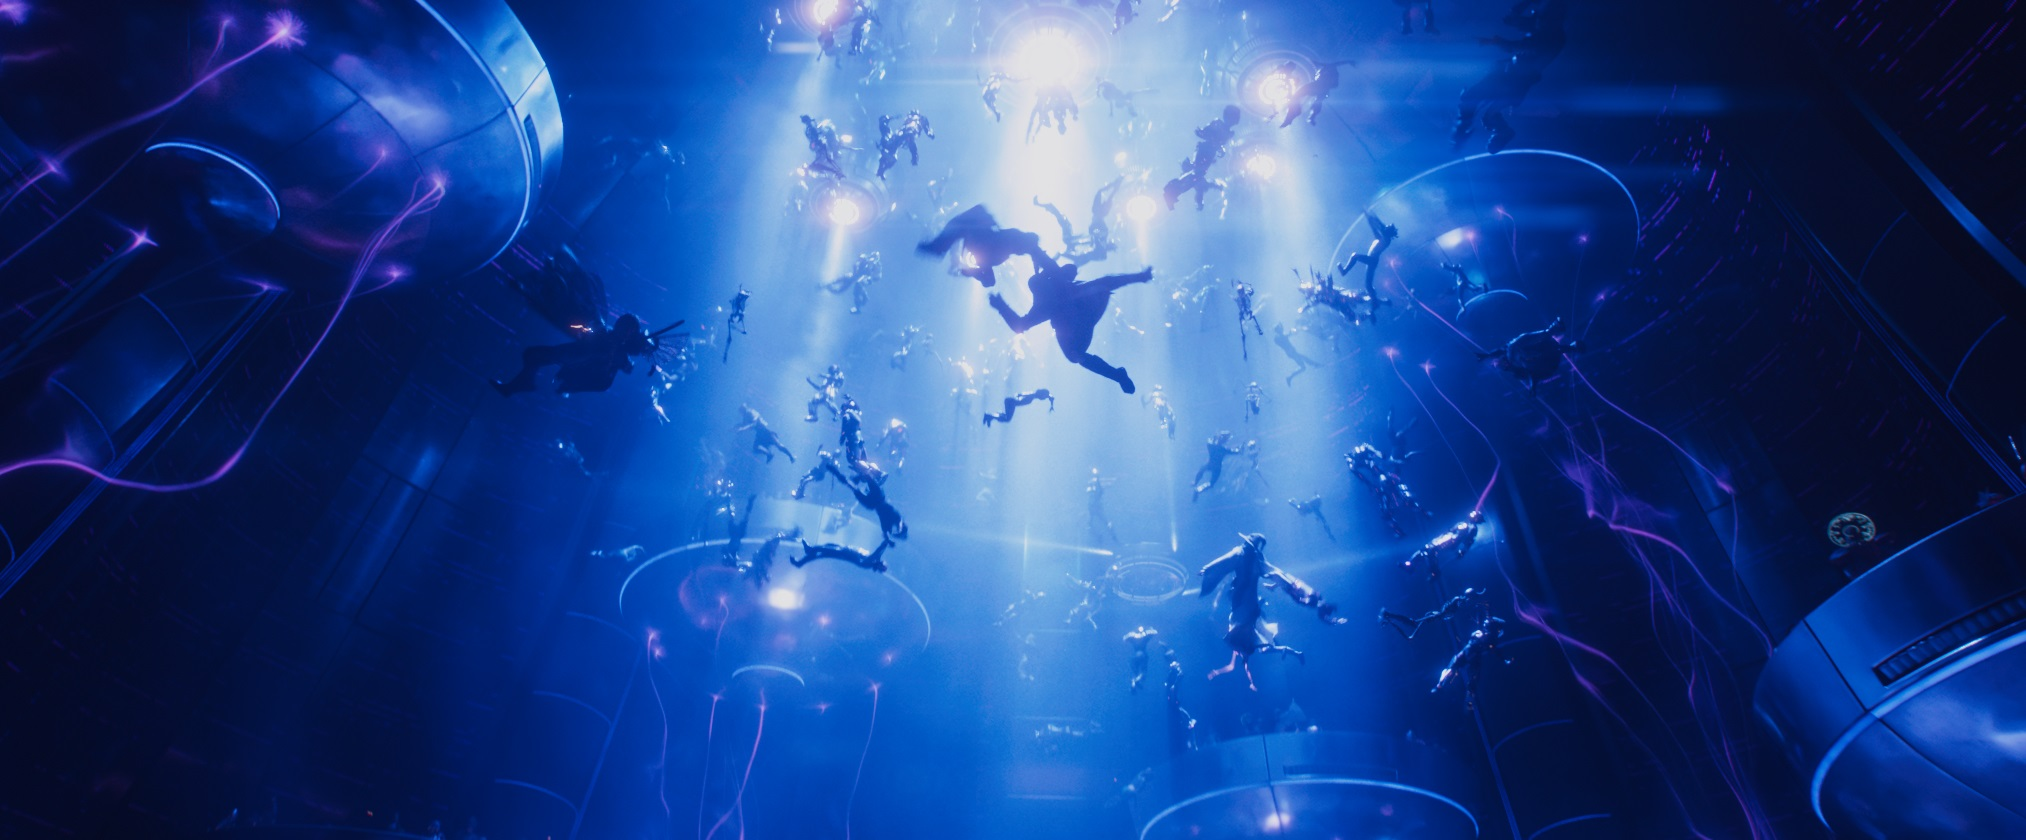 Ready Player One st 11 jpg sd high © 2018 Warner Bros Ent All Rights Reserved